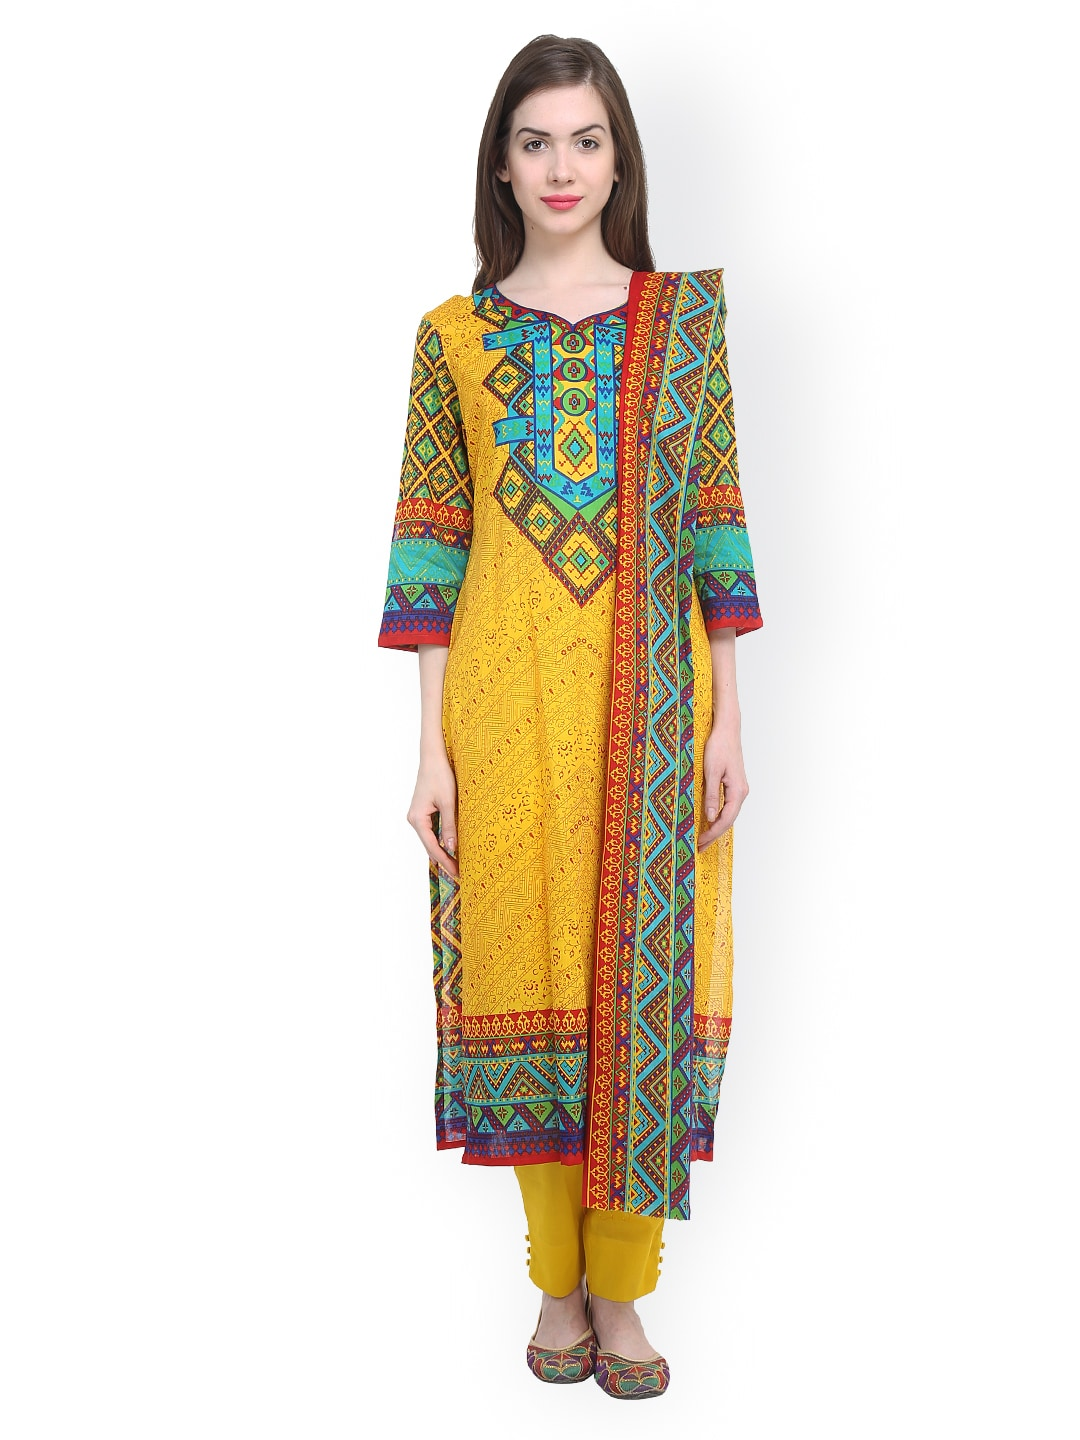 Uptown Galeria Yellow Printed Pakistani Cotton Lawn Unstitched Dress Material